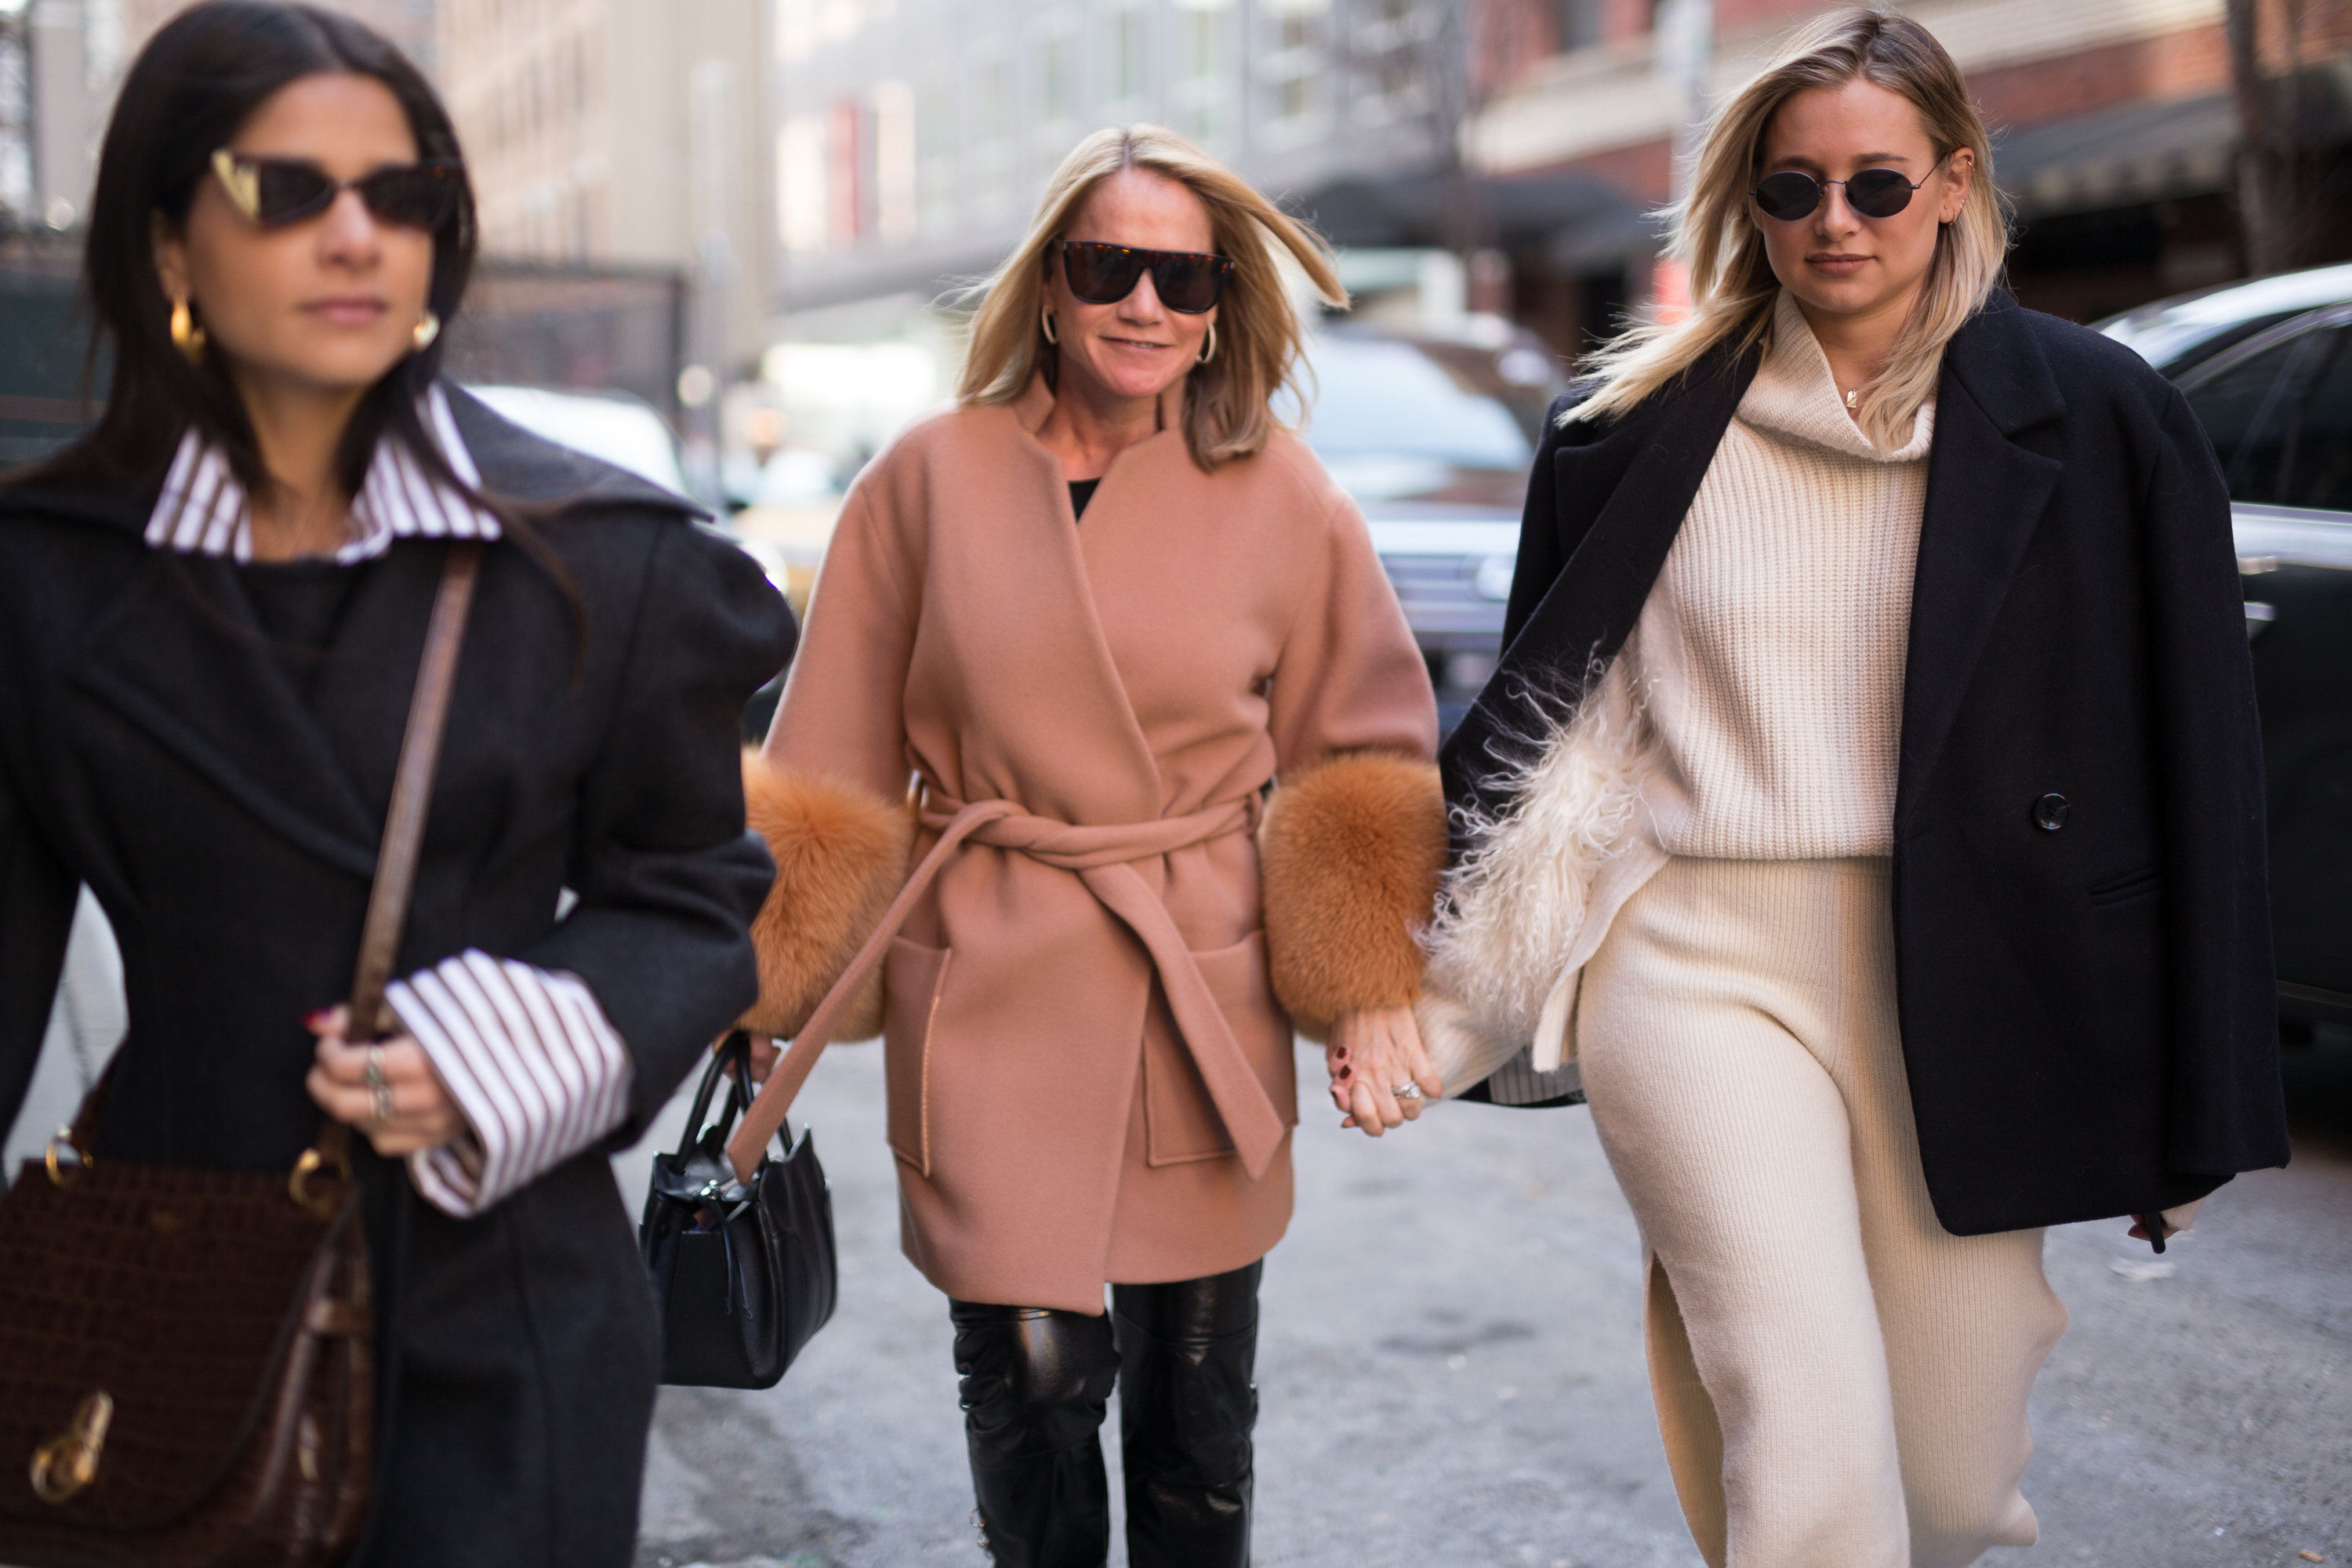 New York Fashion Week 2018 has taken off, and it's not just the catwalk stars and A-listers in the front row that are worthy of sartorial praise.<br> <br> We've sifted through the sidewalk circus performers to find you the key looks worth copying when winter arrives.<br> <br> Take inspiration from these experts in layering, colour blocking and off-duty cool. <br>